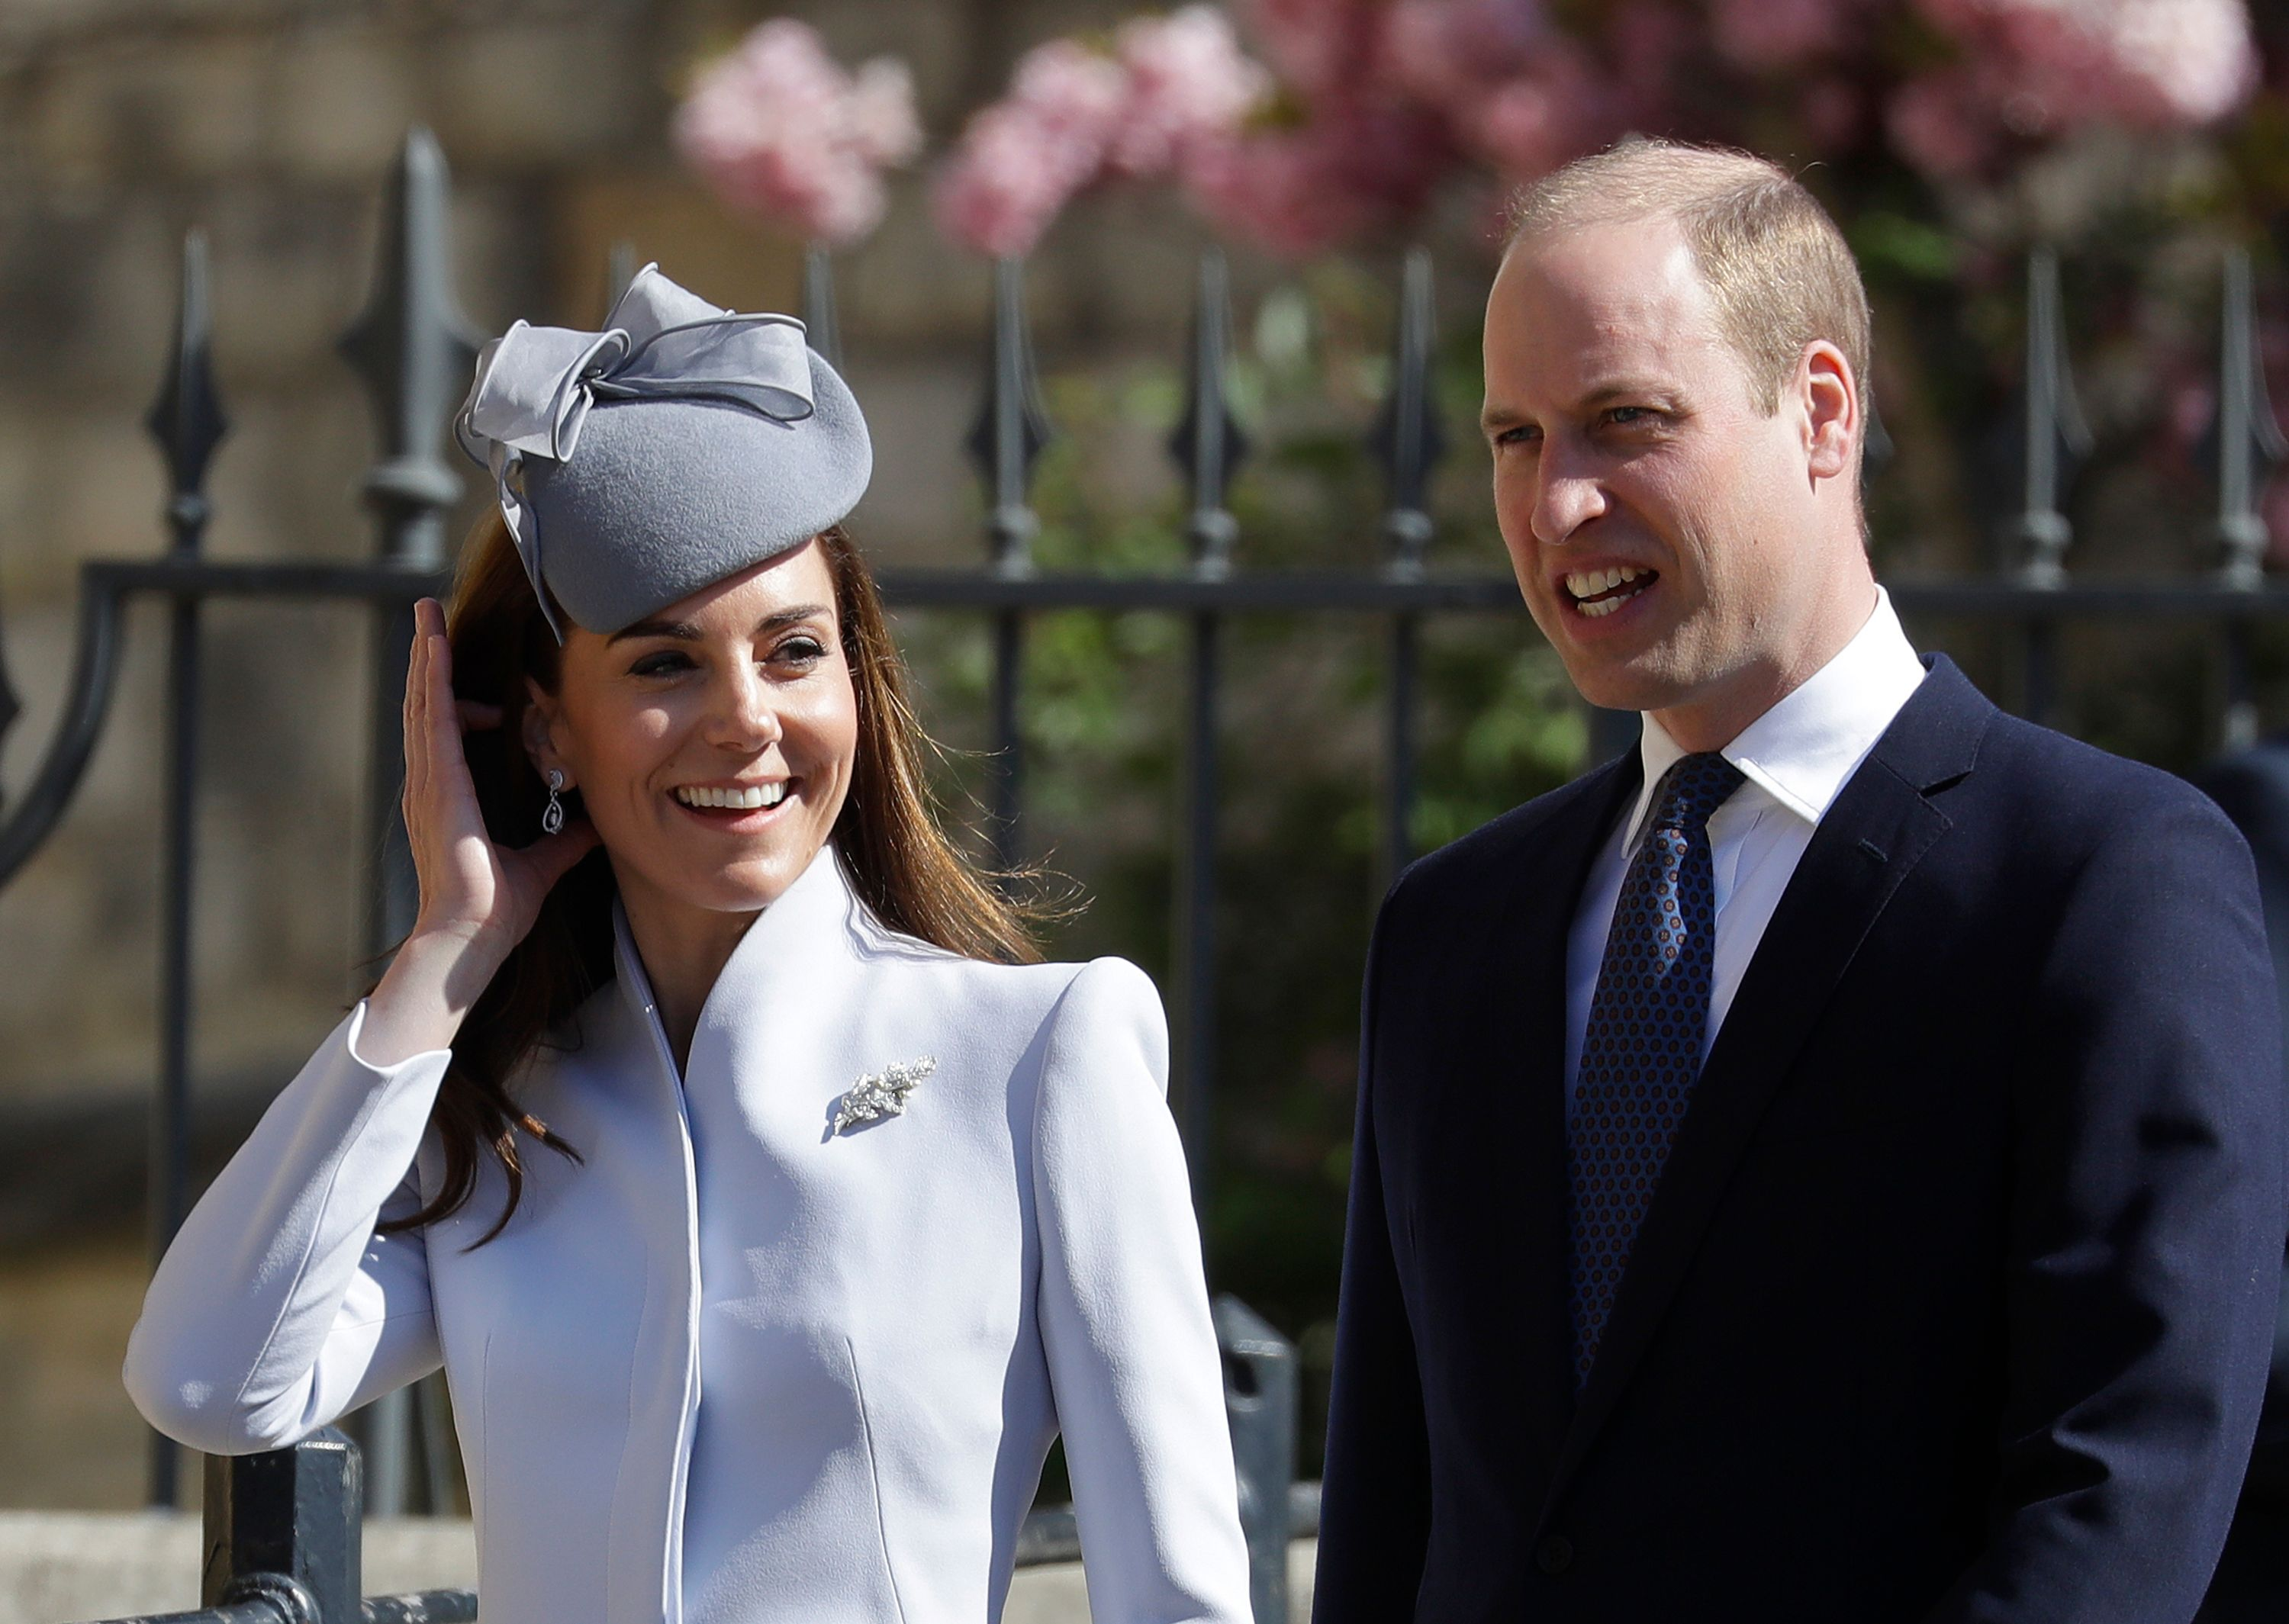 Catherine, Duchess of Cambridgeand Britain's Prince William, Duke of Cambridge arrive for the Easter Mattins Service at St. George's Chapel, Windsor Castle on April 21, 2019. (KIRSTY WIGGLESWORTH/AFP/Getty Images)